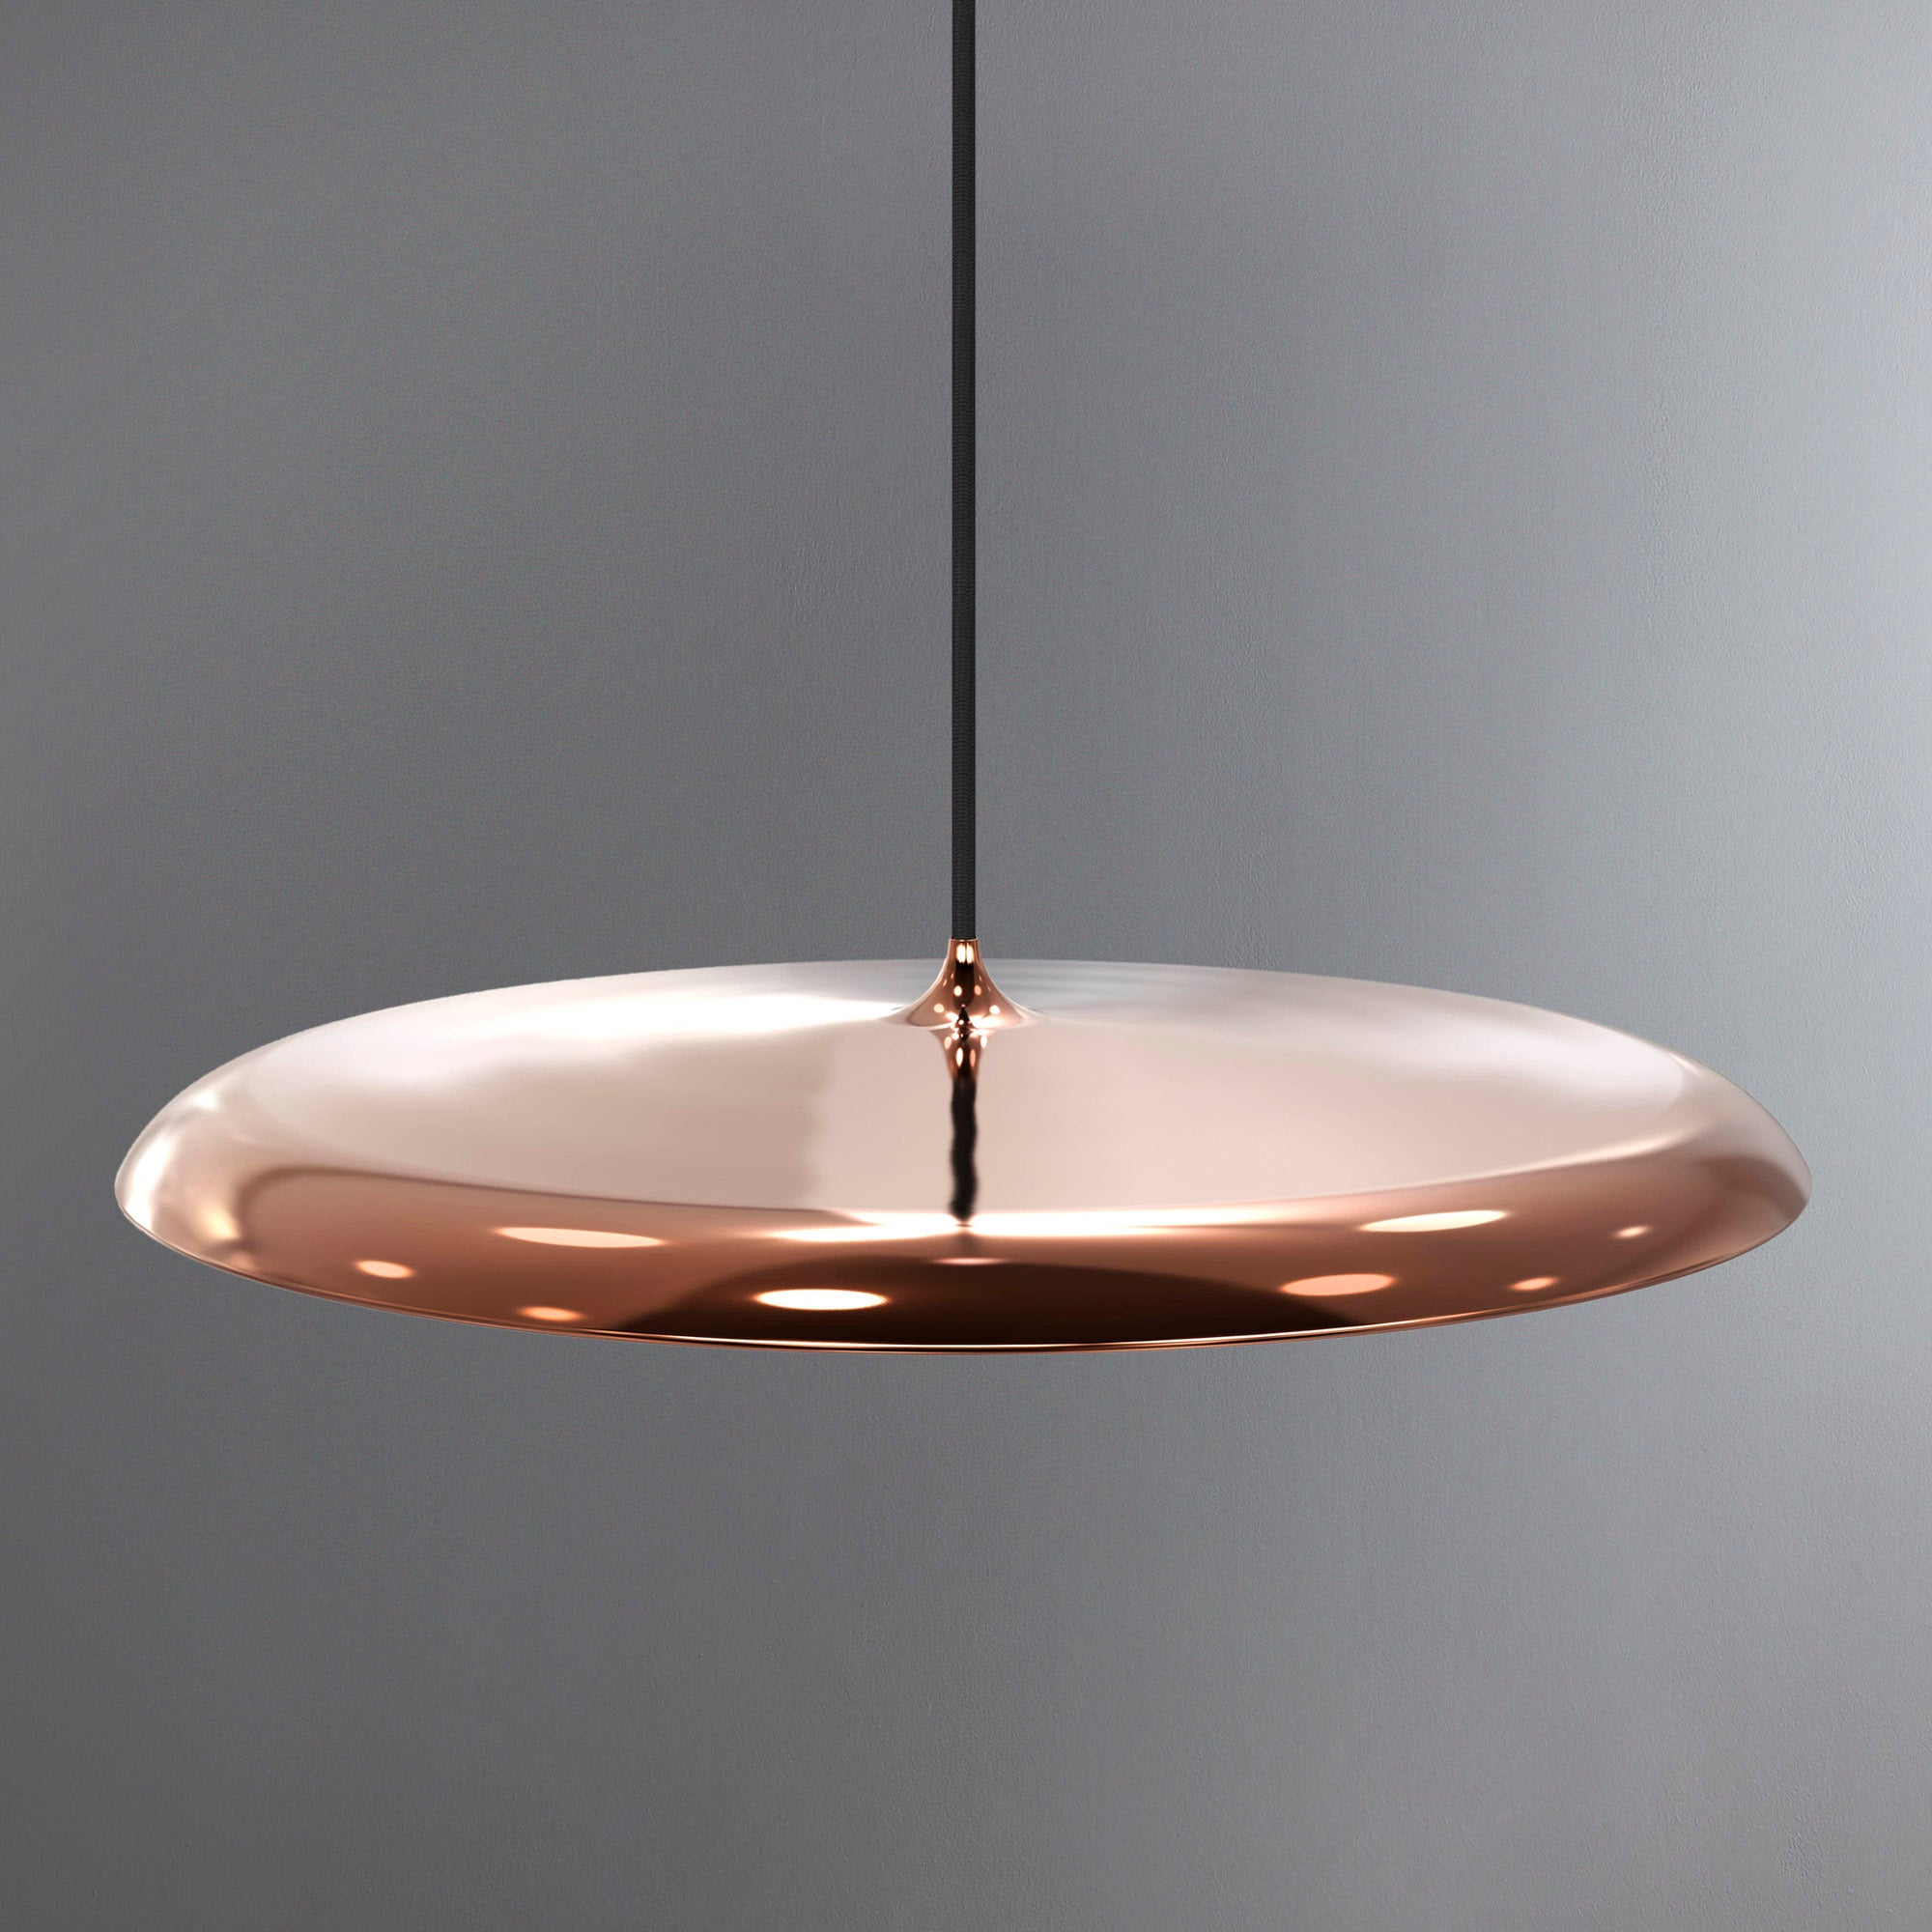 Image of Artist Large Copper LED Pendant Light Fitting Copper